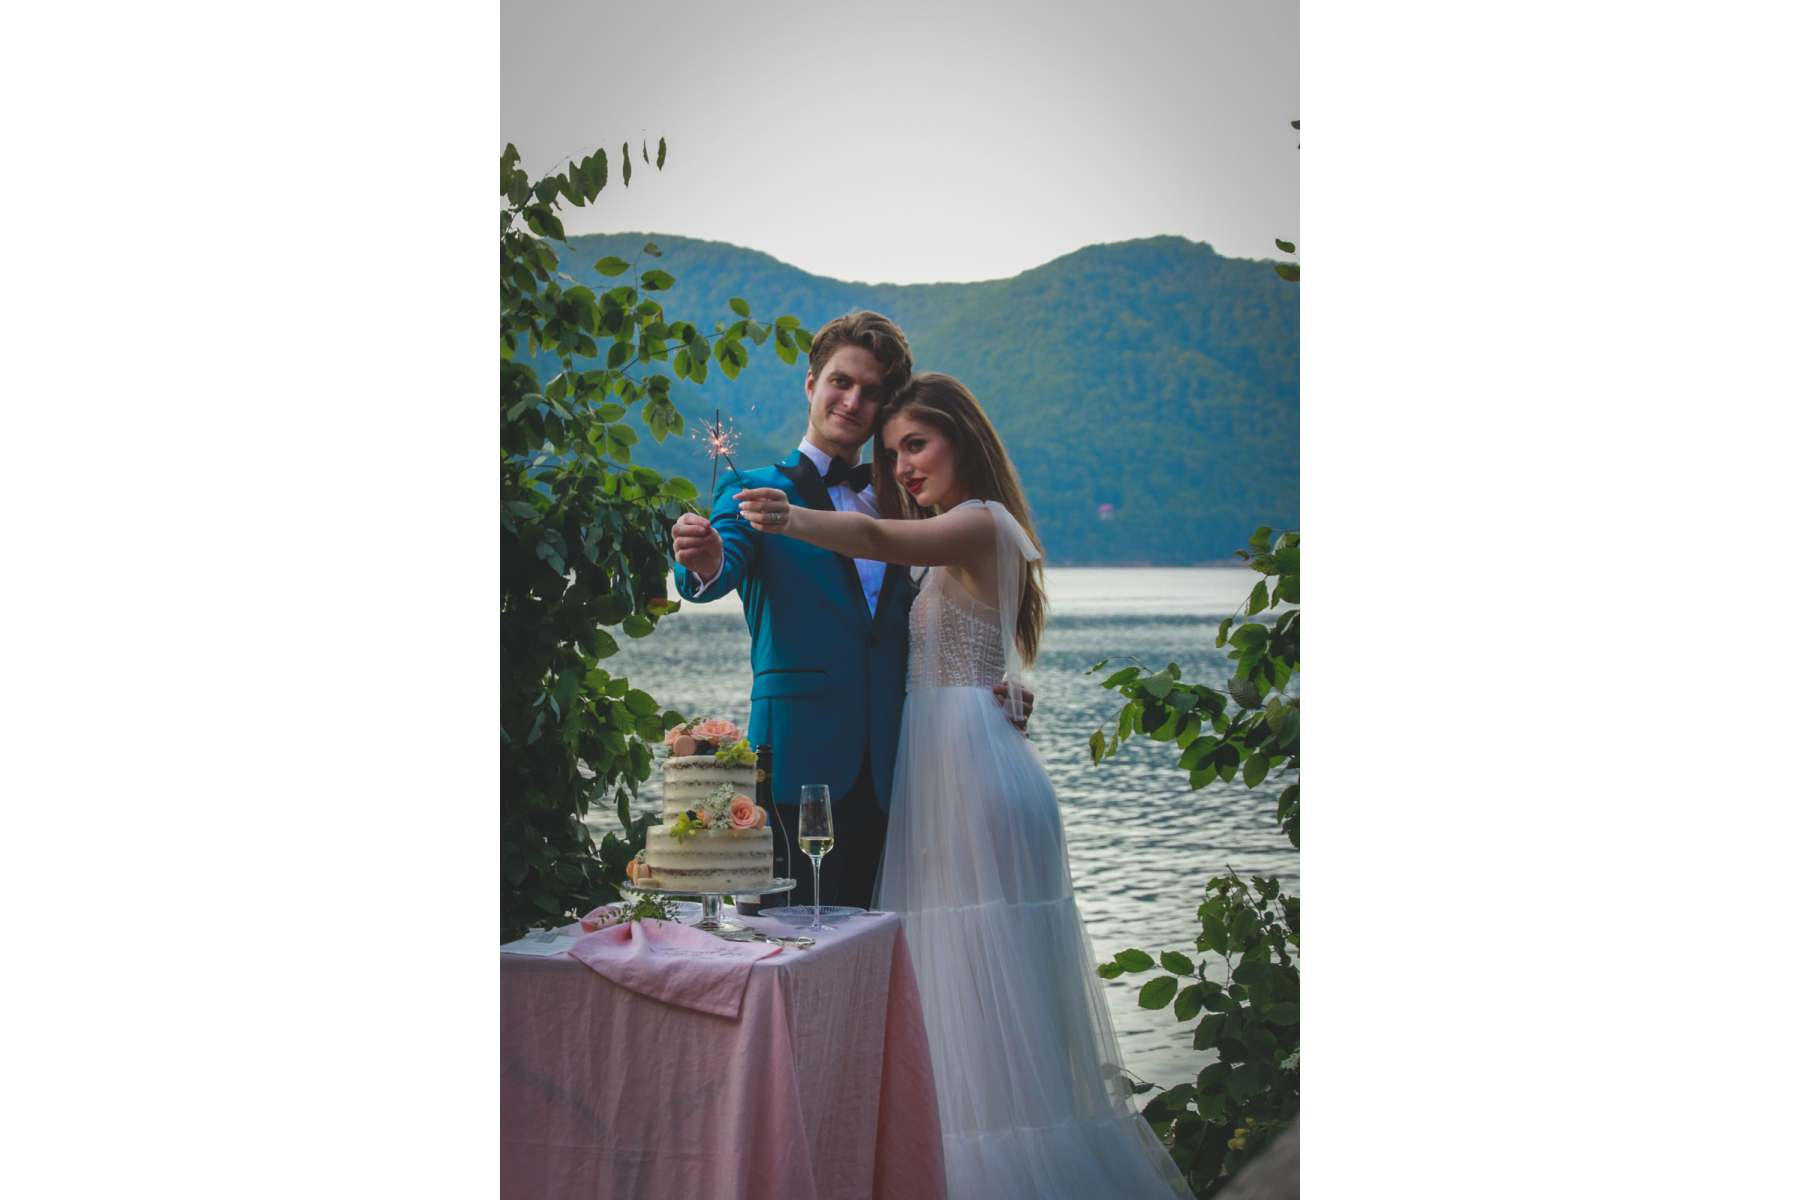 Lakeside Intimate Weddings in Romania